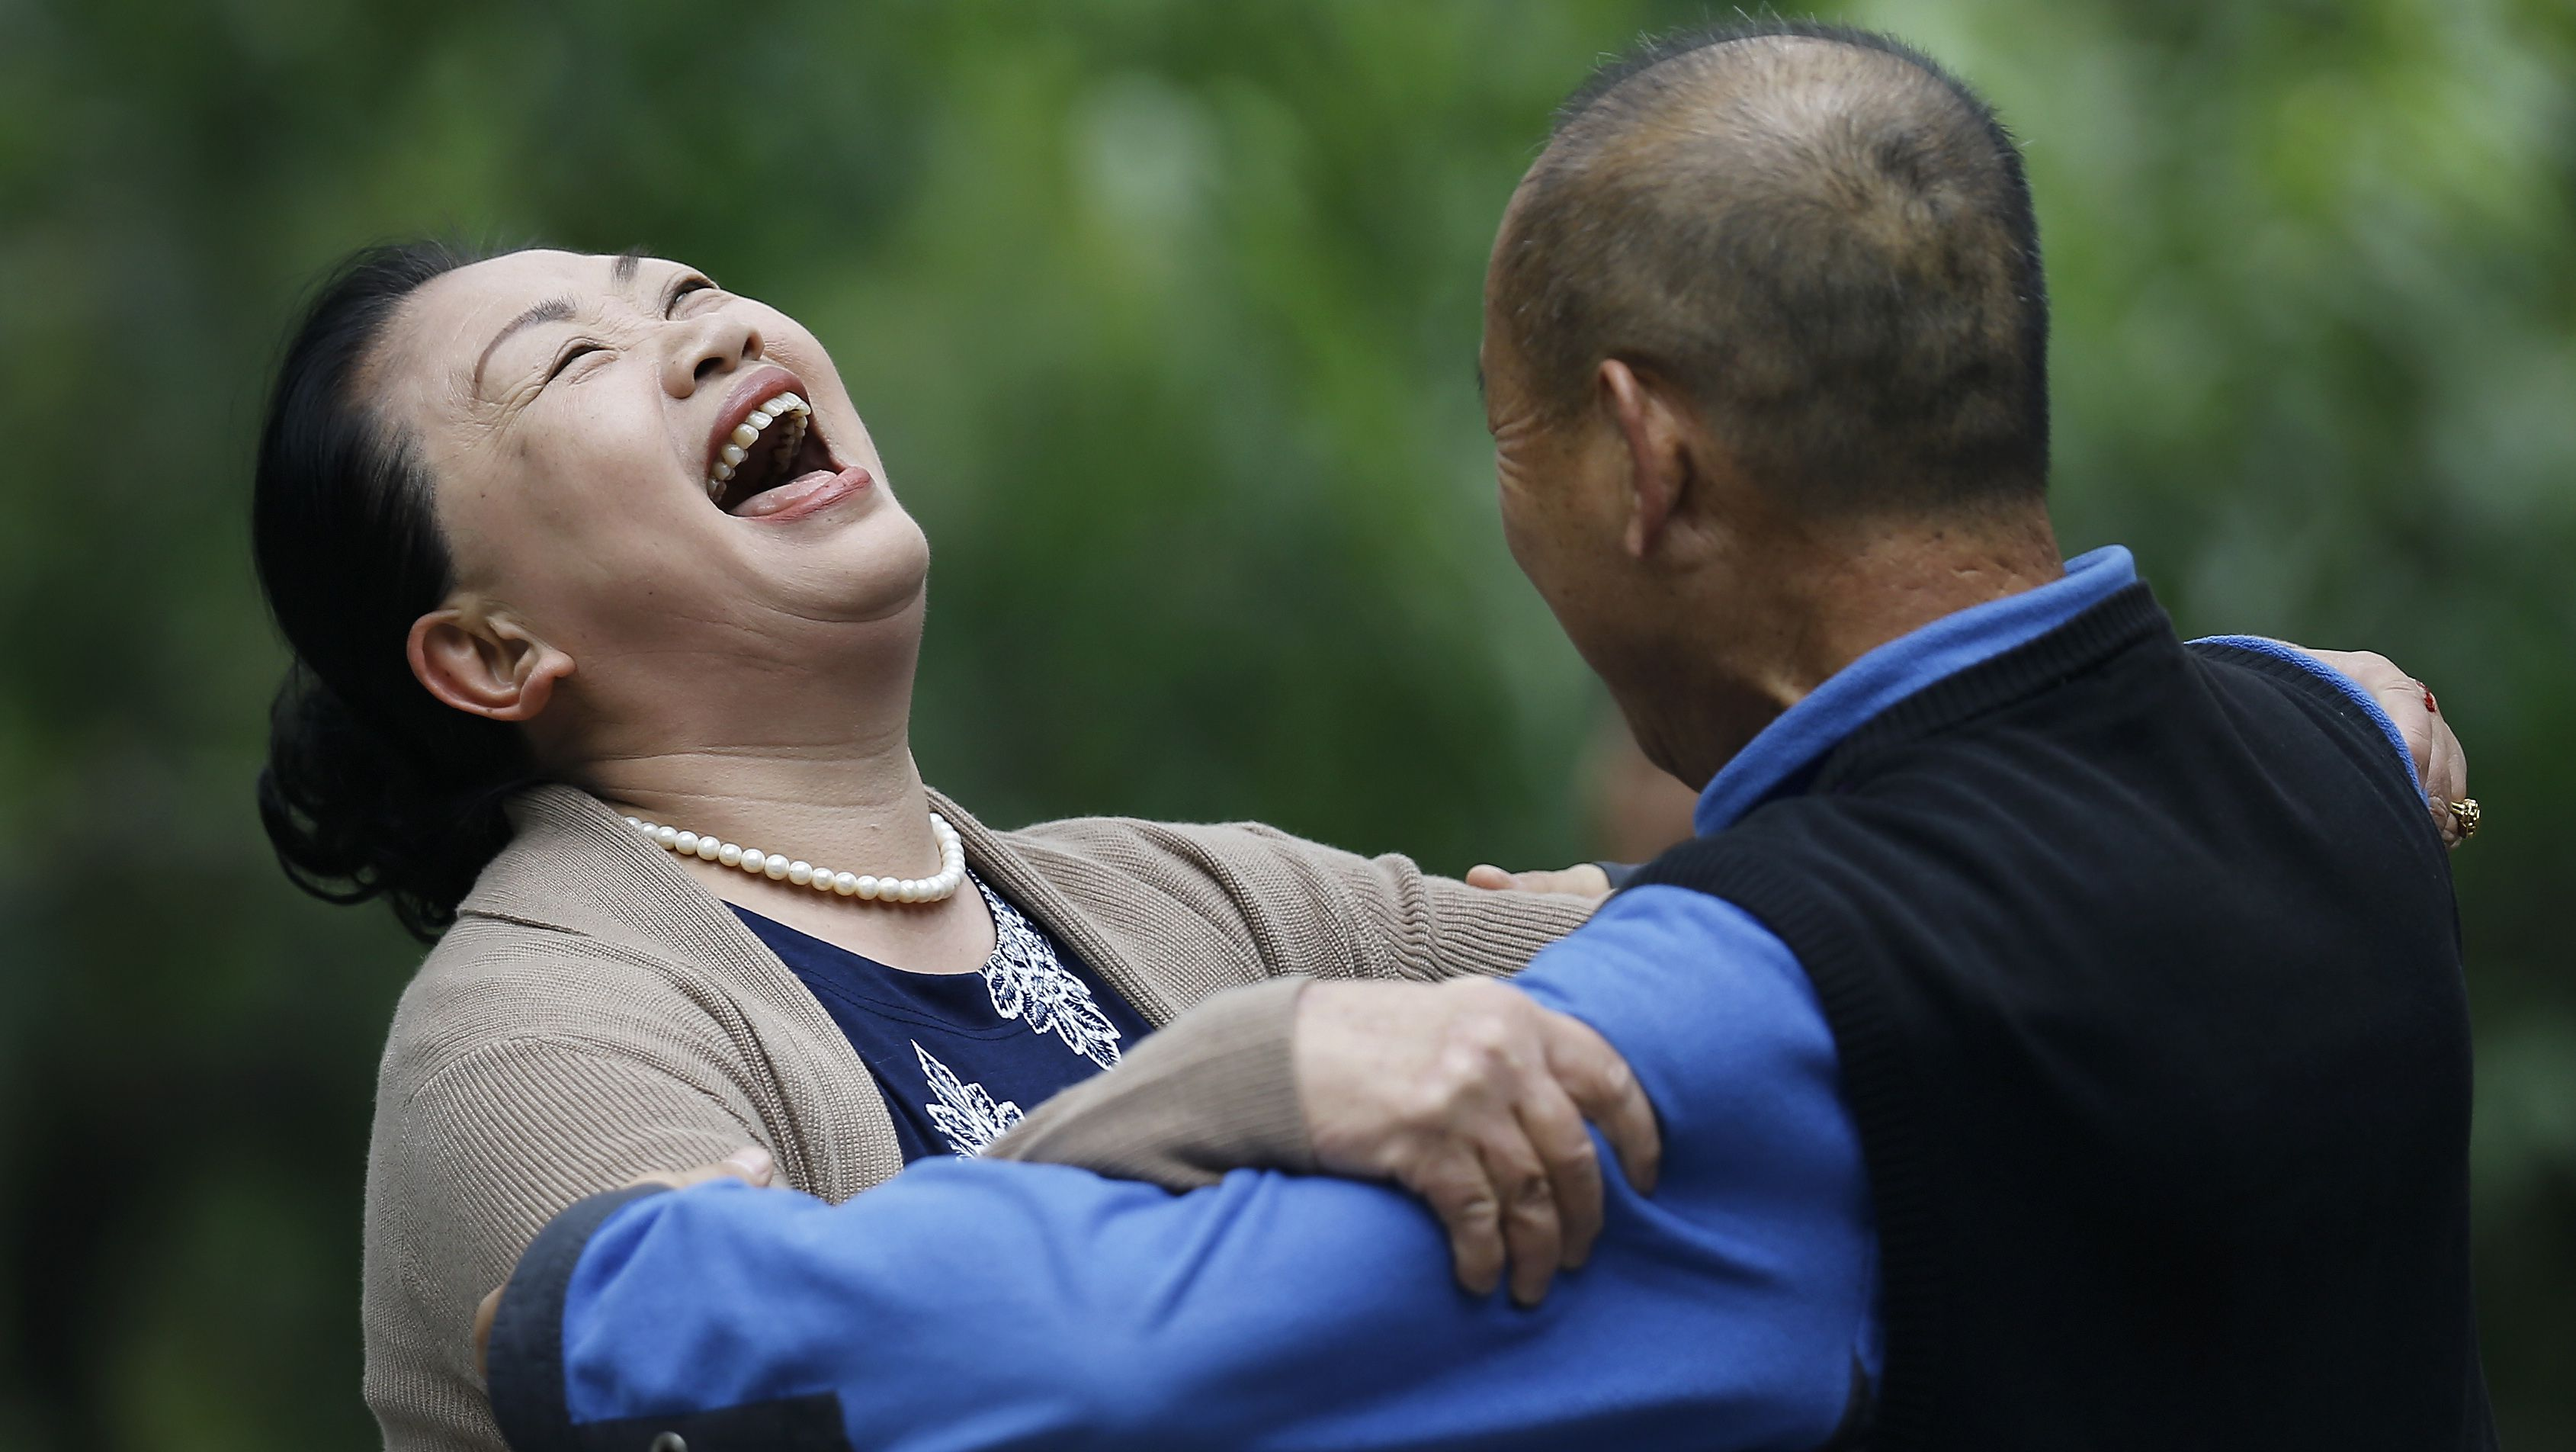 A Chinese woman laughs during a social dance with a man at Ritan Park in Beijing, China Thursday, Oct. 30, 2014. Levels of self-reported well-being in fast-growing nations like Indonesia, China and Malaysia now rival those in US, Germany and the United Kingdom, rich nations which have long topped the happiness charts, according to a Pew Research Center global survey released Friday that it showed how national income was closely linked to personal life satisfaction. (AP Photo/Andy Wong)